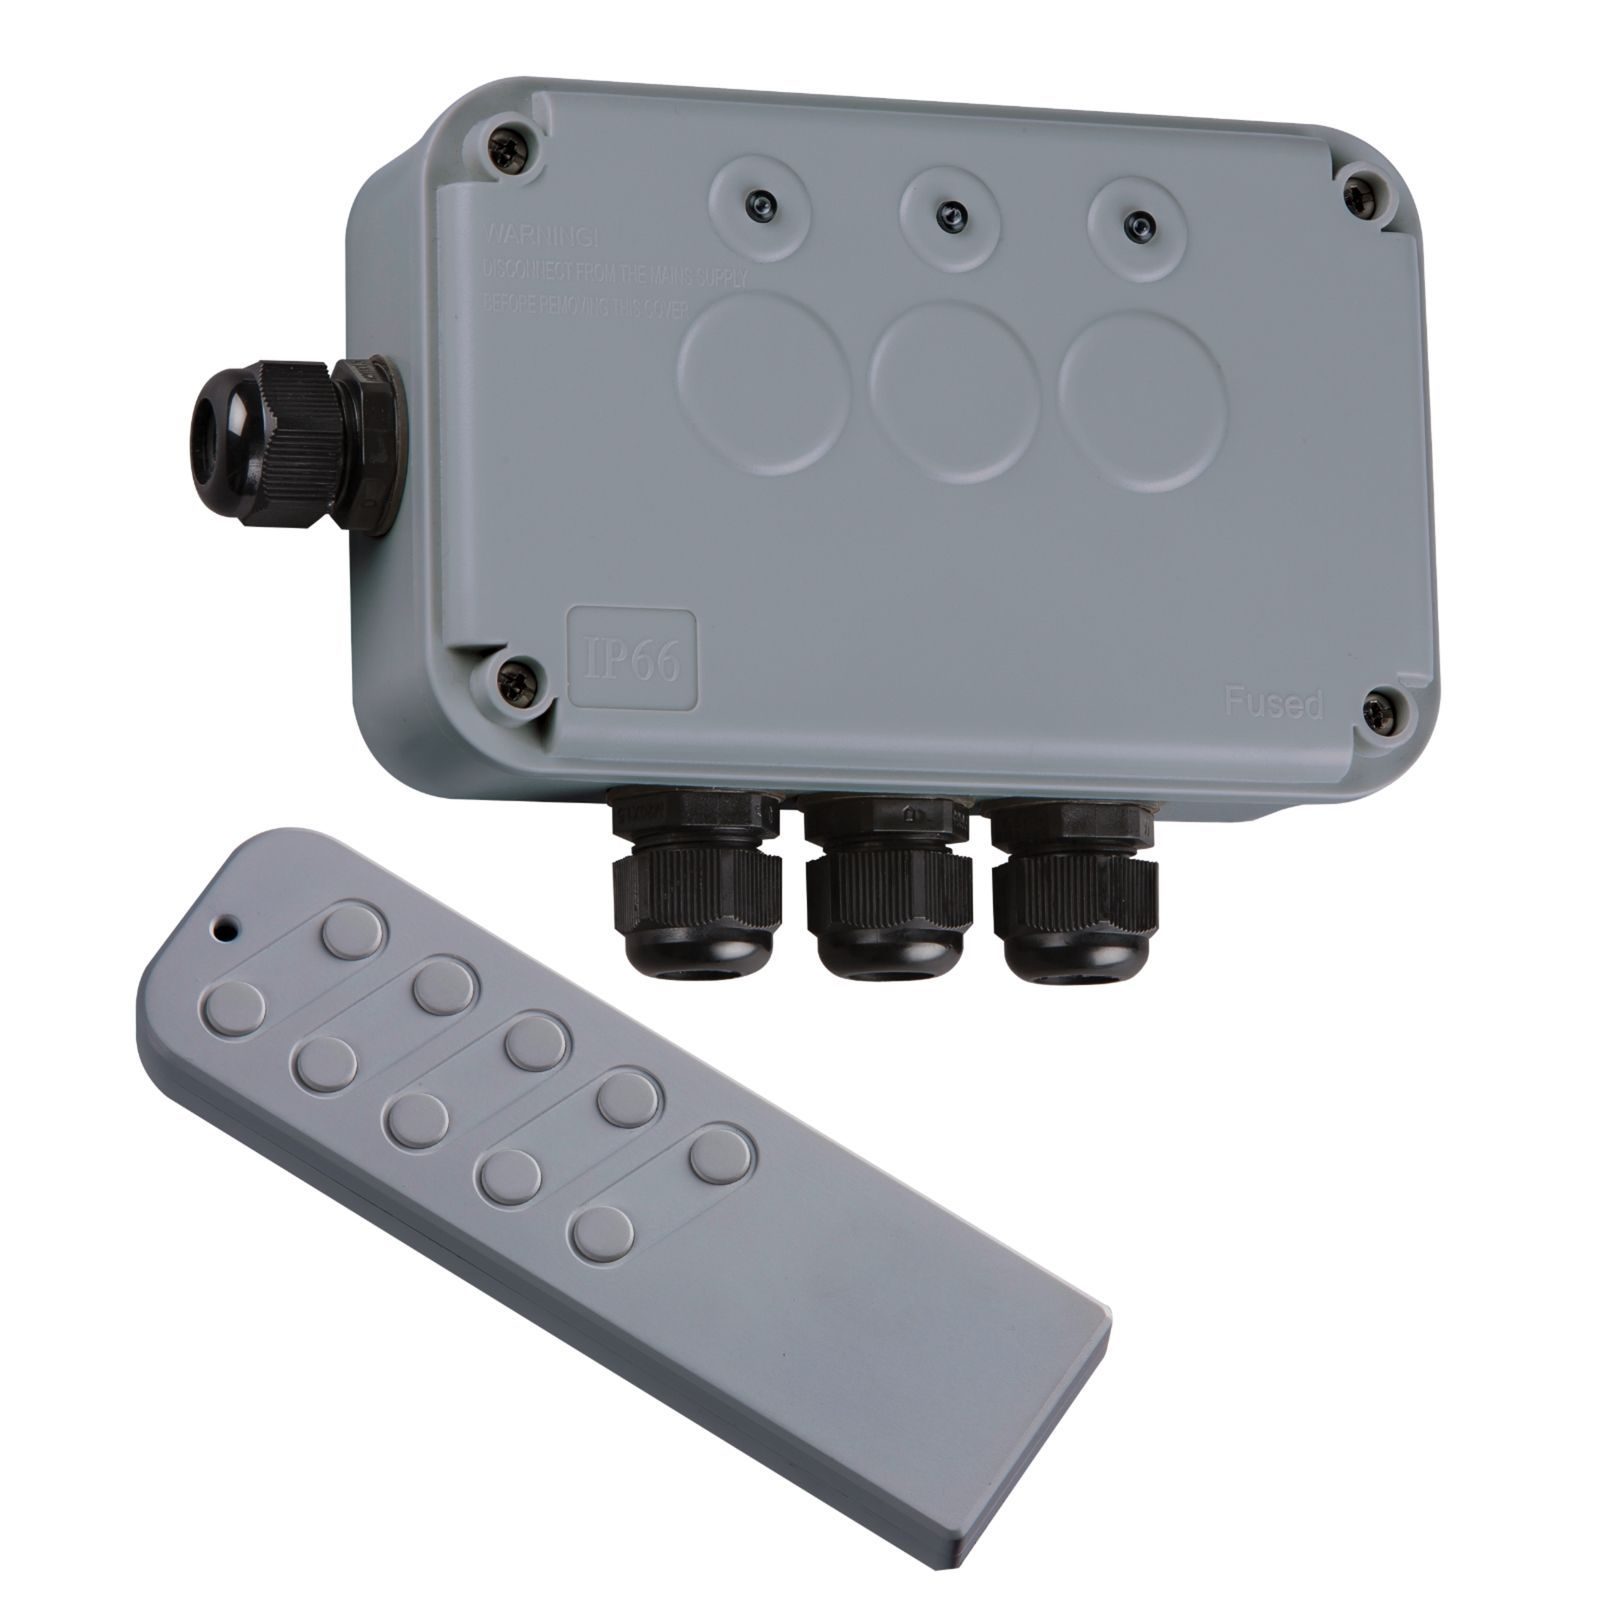 Outdoor Lights Remote Control: Knightsbridge IP663G Outdoor Remote Controlled Wireless